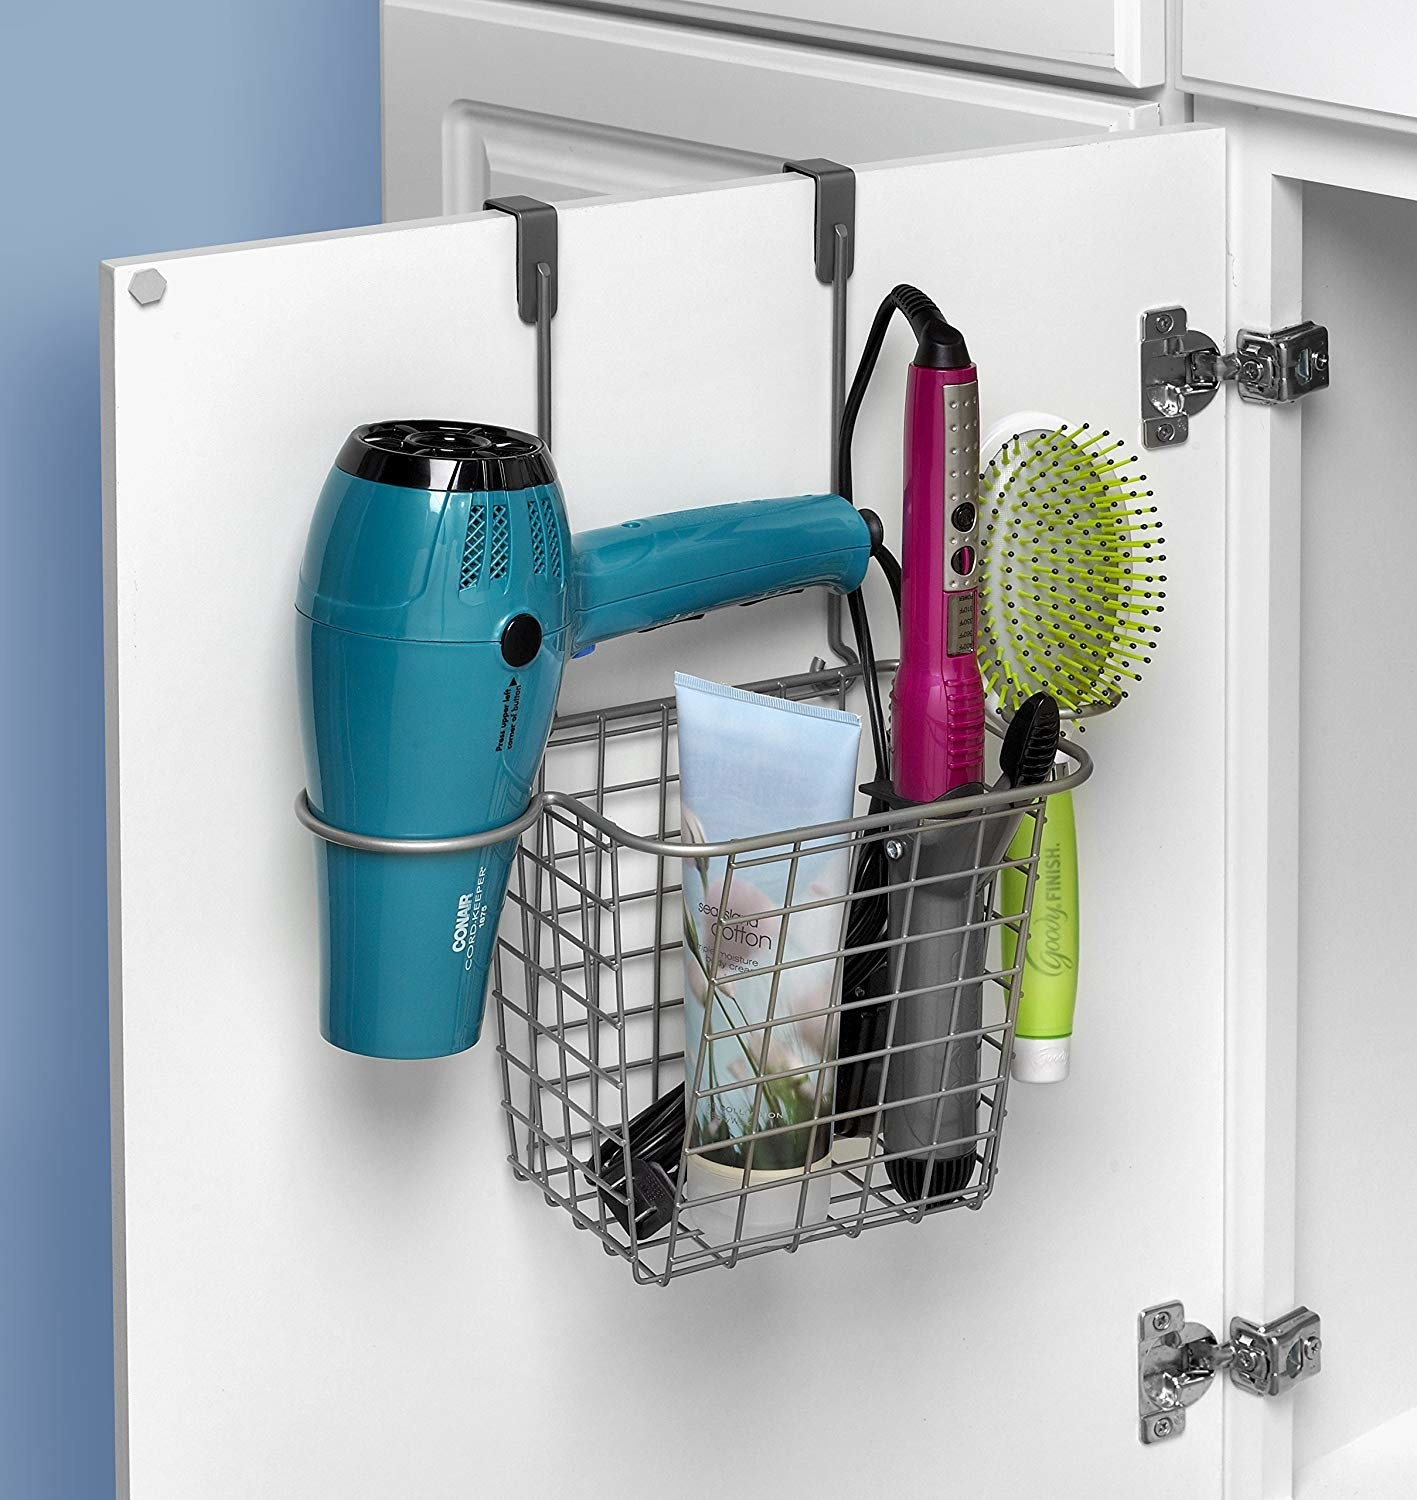 open bathroom cabinet door with basket-like over-the-door hanging organizer filled with hair tools